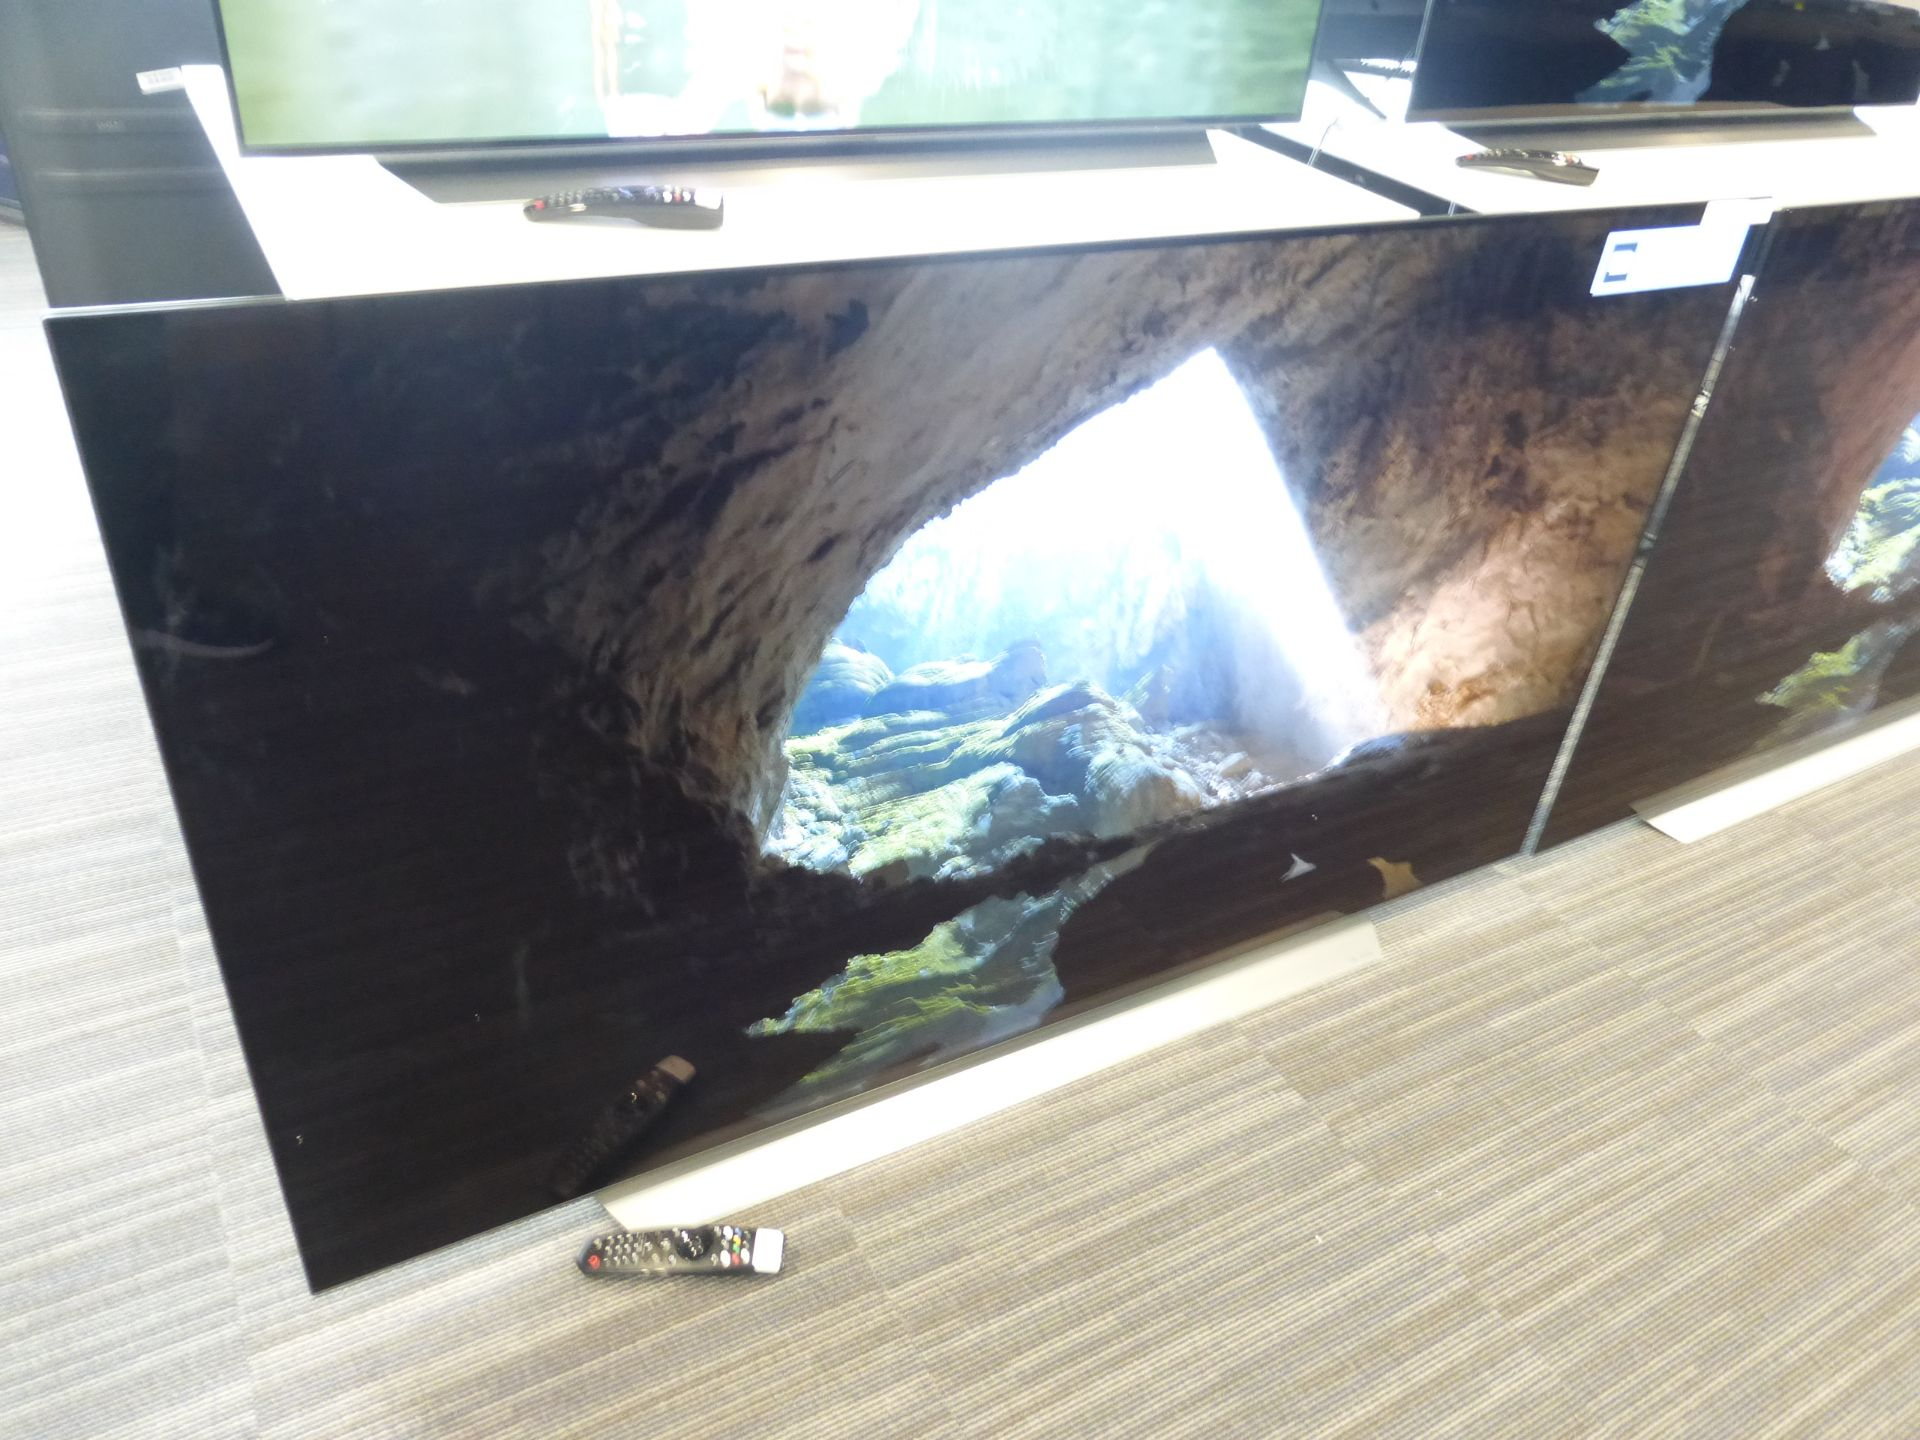 LG 65'' 4K OLED TV Model: OLED65CX5LB, includes remote (R7) Screen has no visible damage, sound is